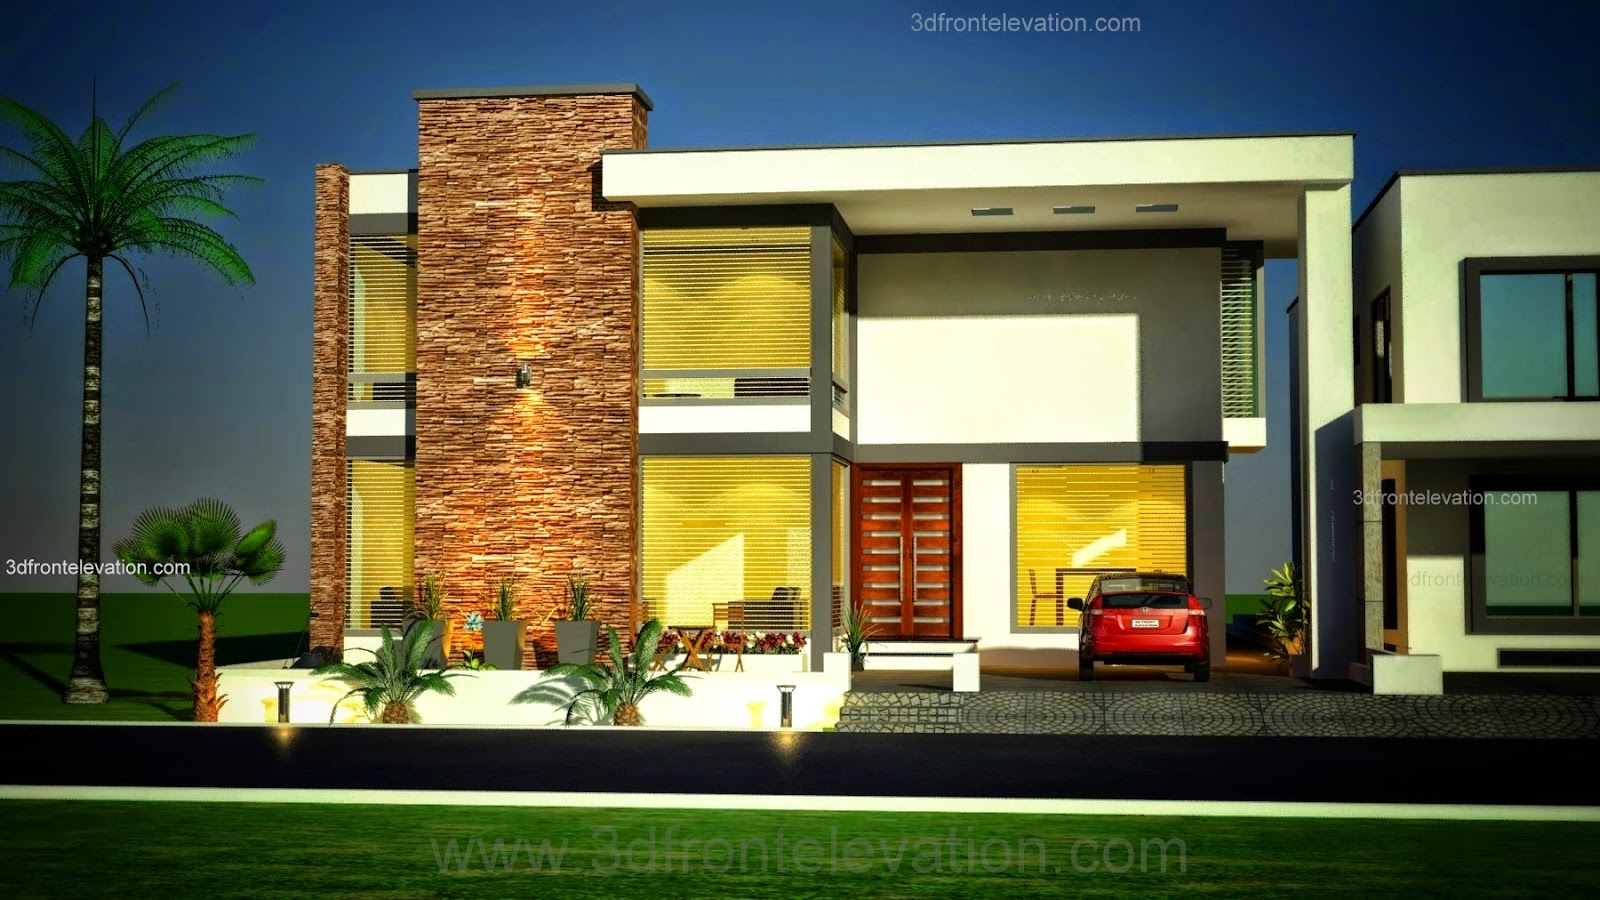 Front Elevation Karachi : Front elevation houses dha karchi joy studio design